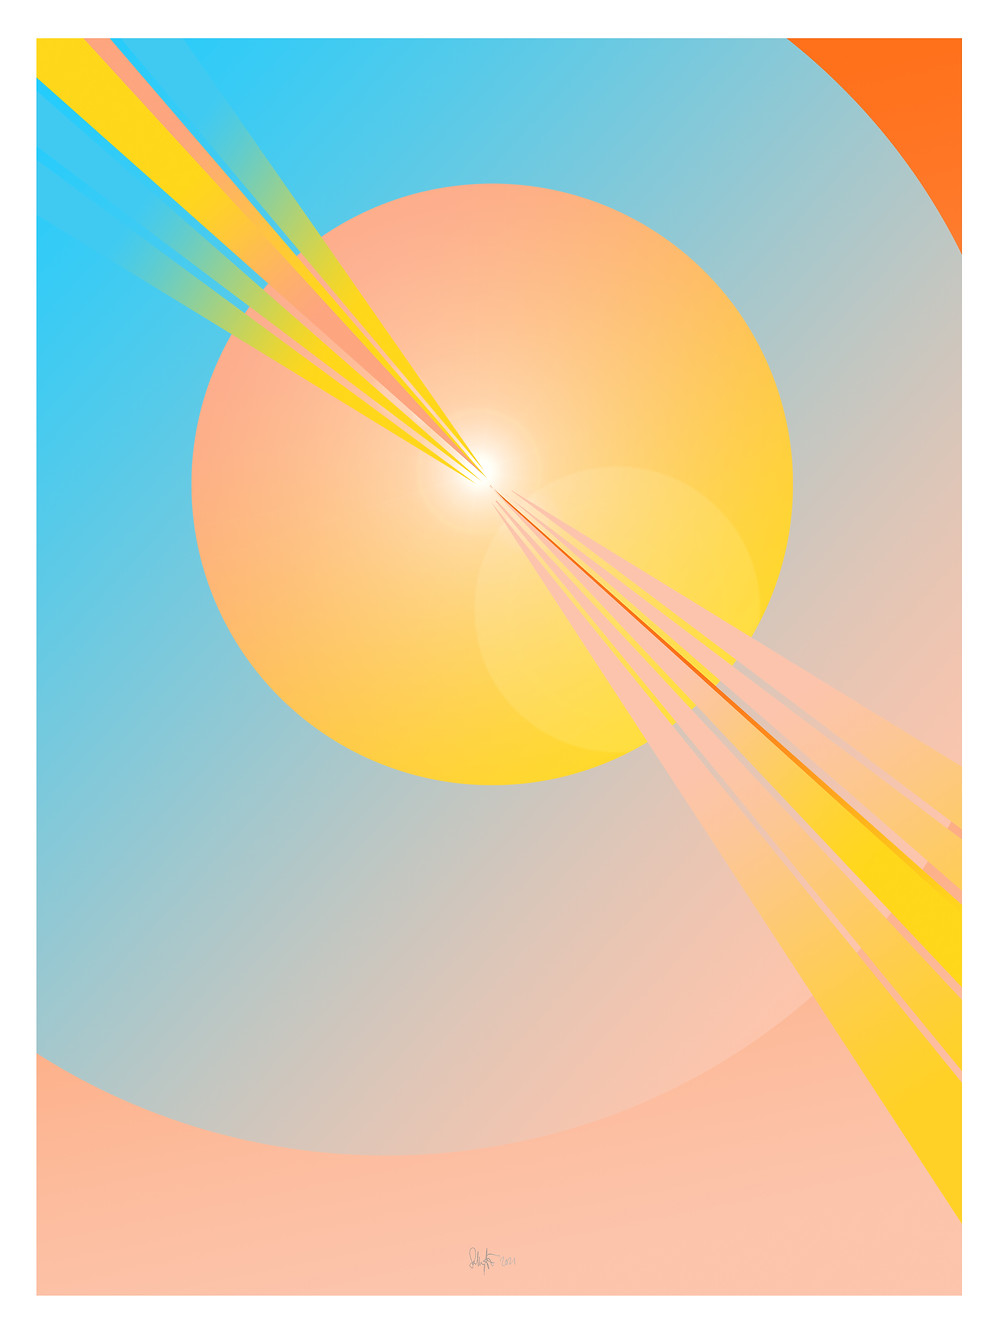 An emotive piece of art by Sally A. Edwards featuring a bright pink and yellow orb with colourful rays and a hued blue sky to make you feel peaceful.